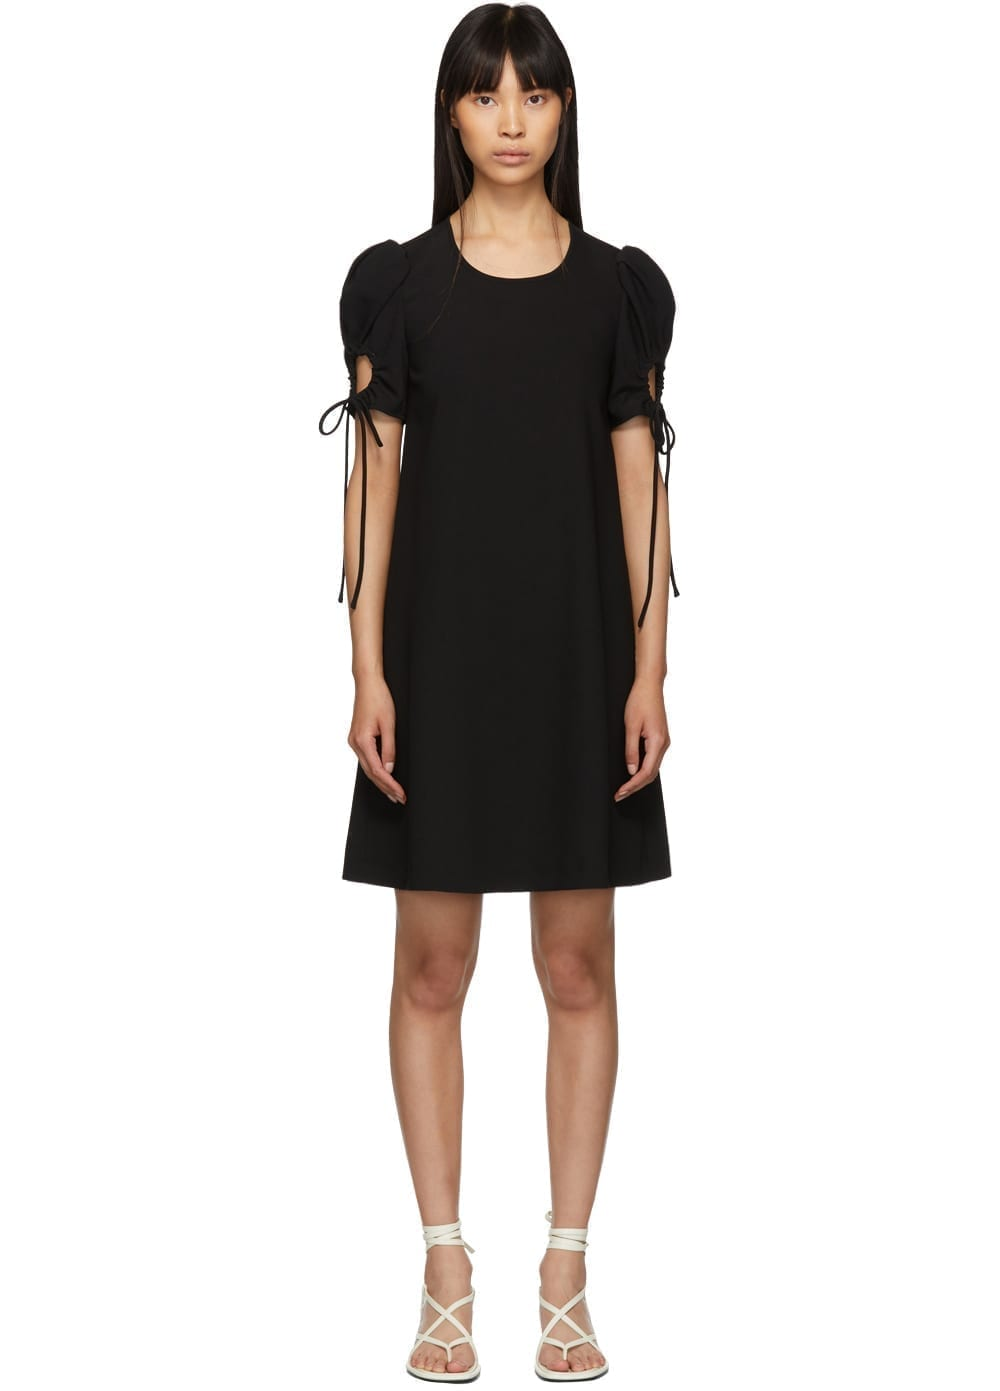 SEE BY CHLOÉ Puff Sleeve Black Dress